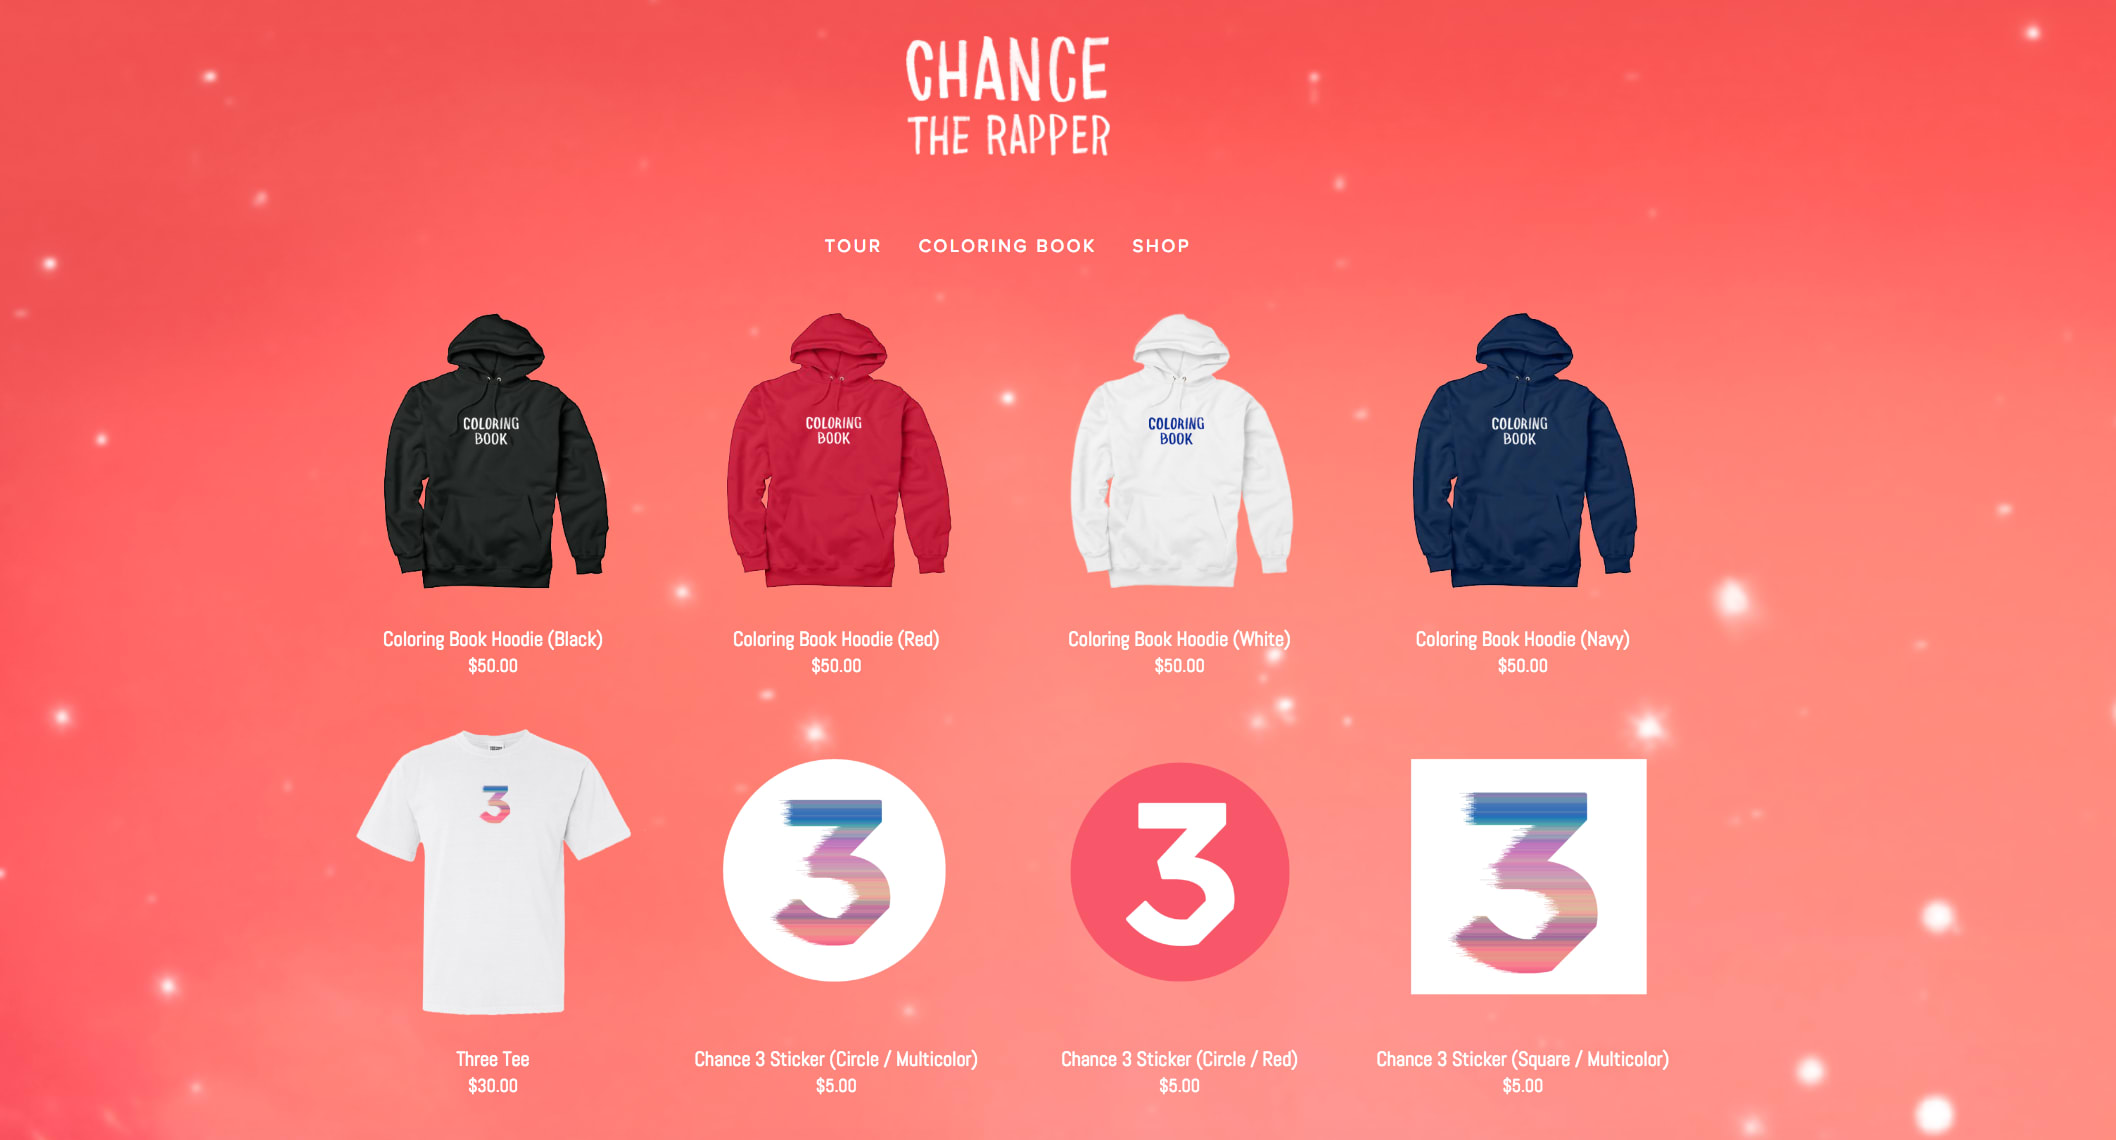 The coloring book chance the rapper download - Chance The Rapper Merch